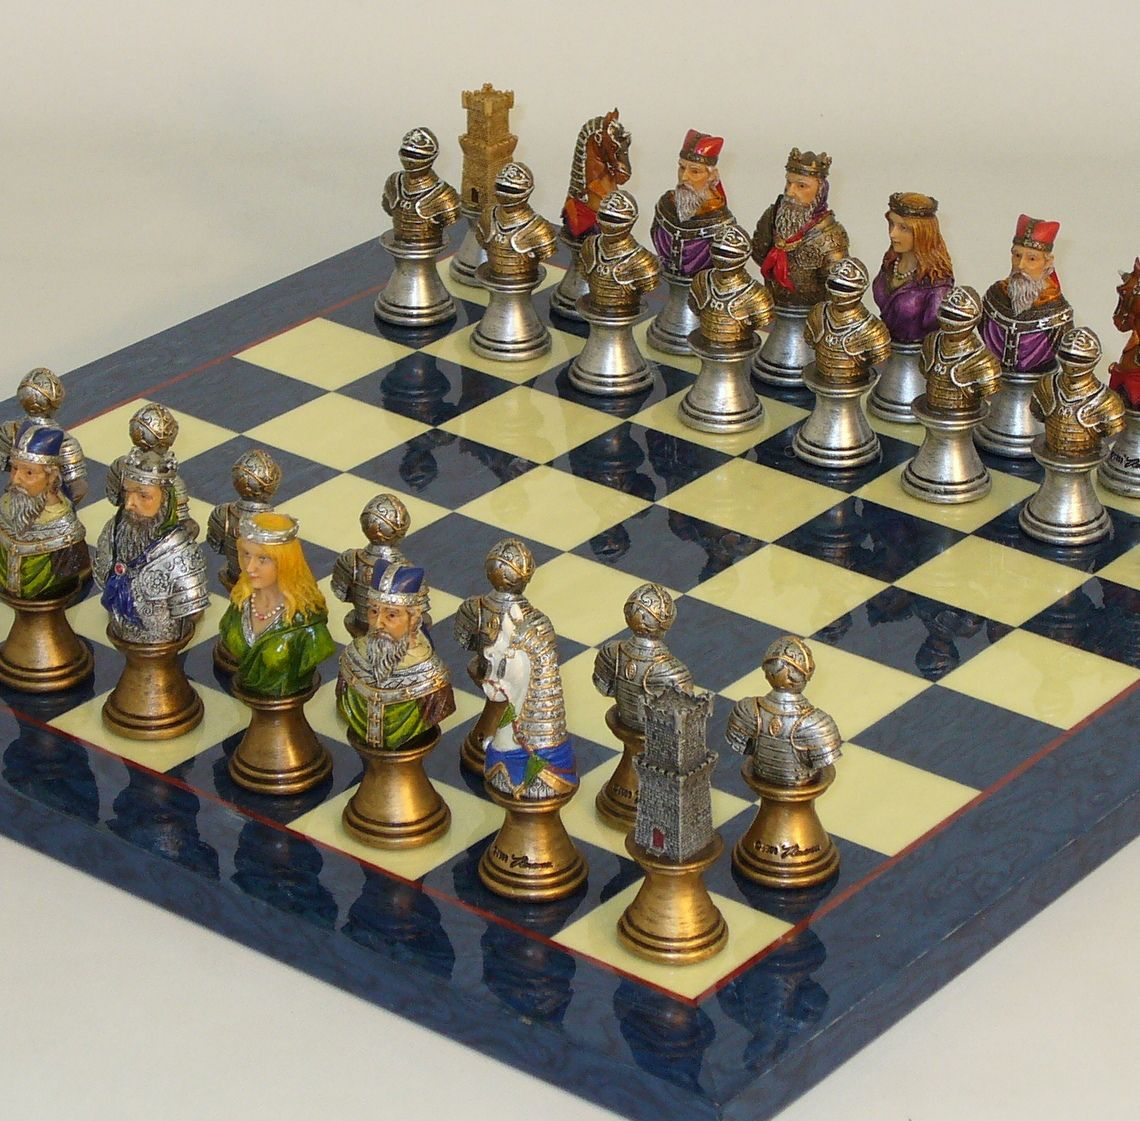 Decorative Chess Sets Unique Chess Sets .chess Players Chess Set Collection Or Just